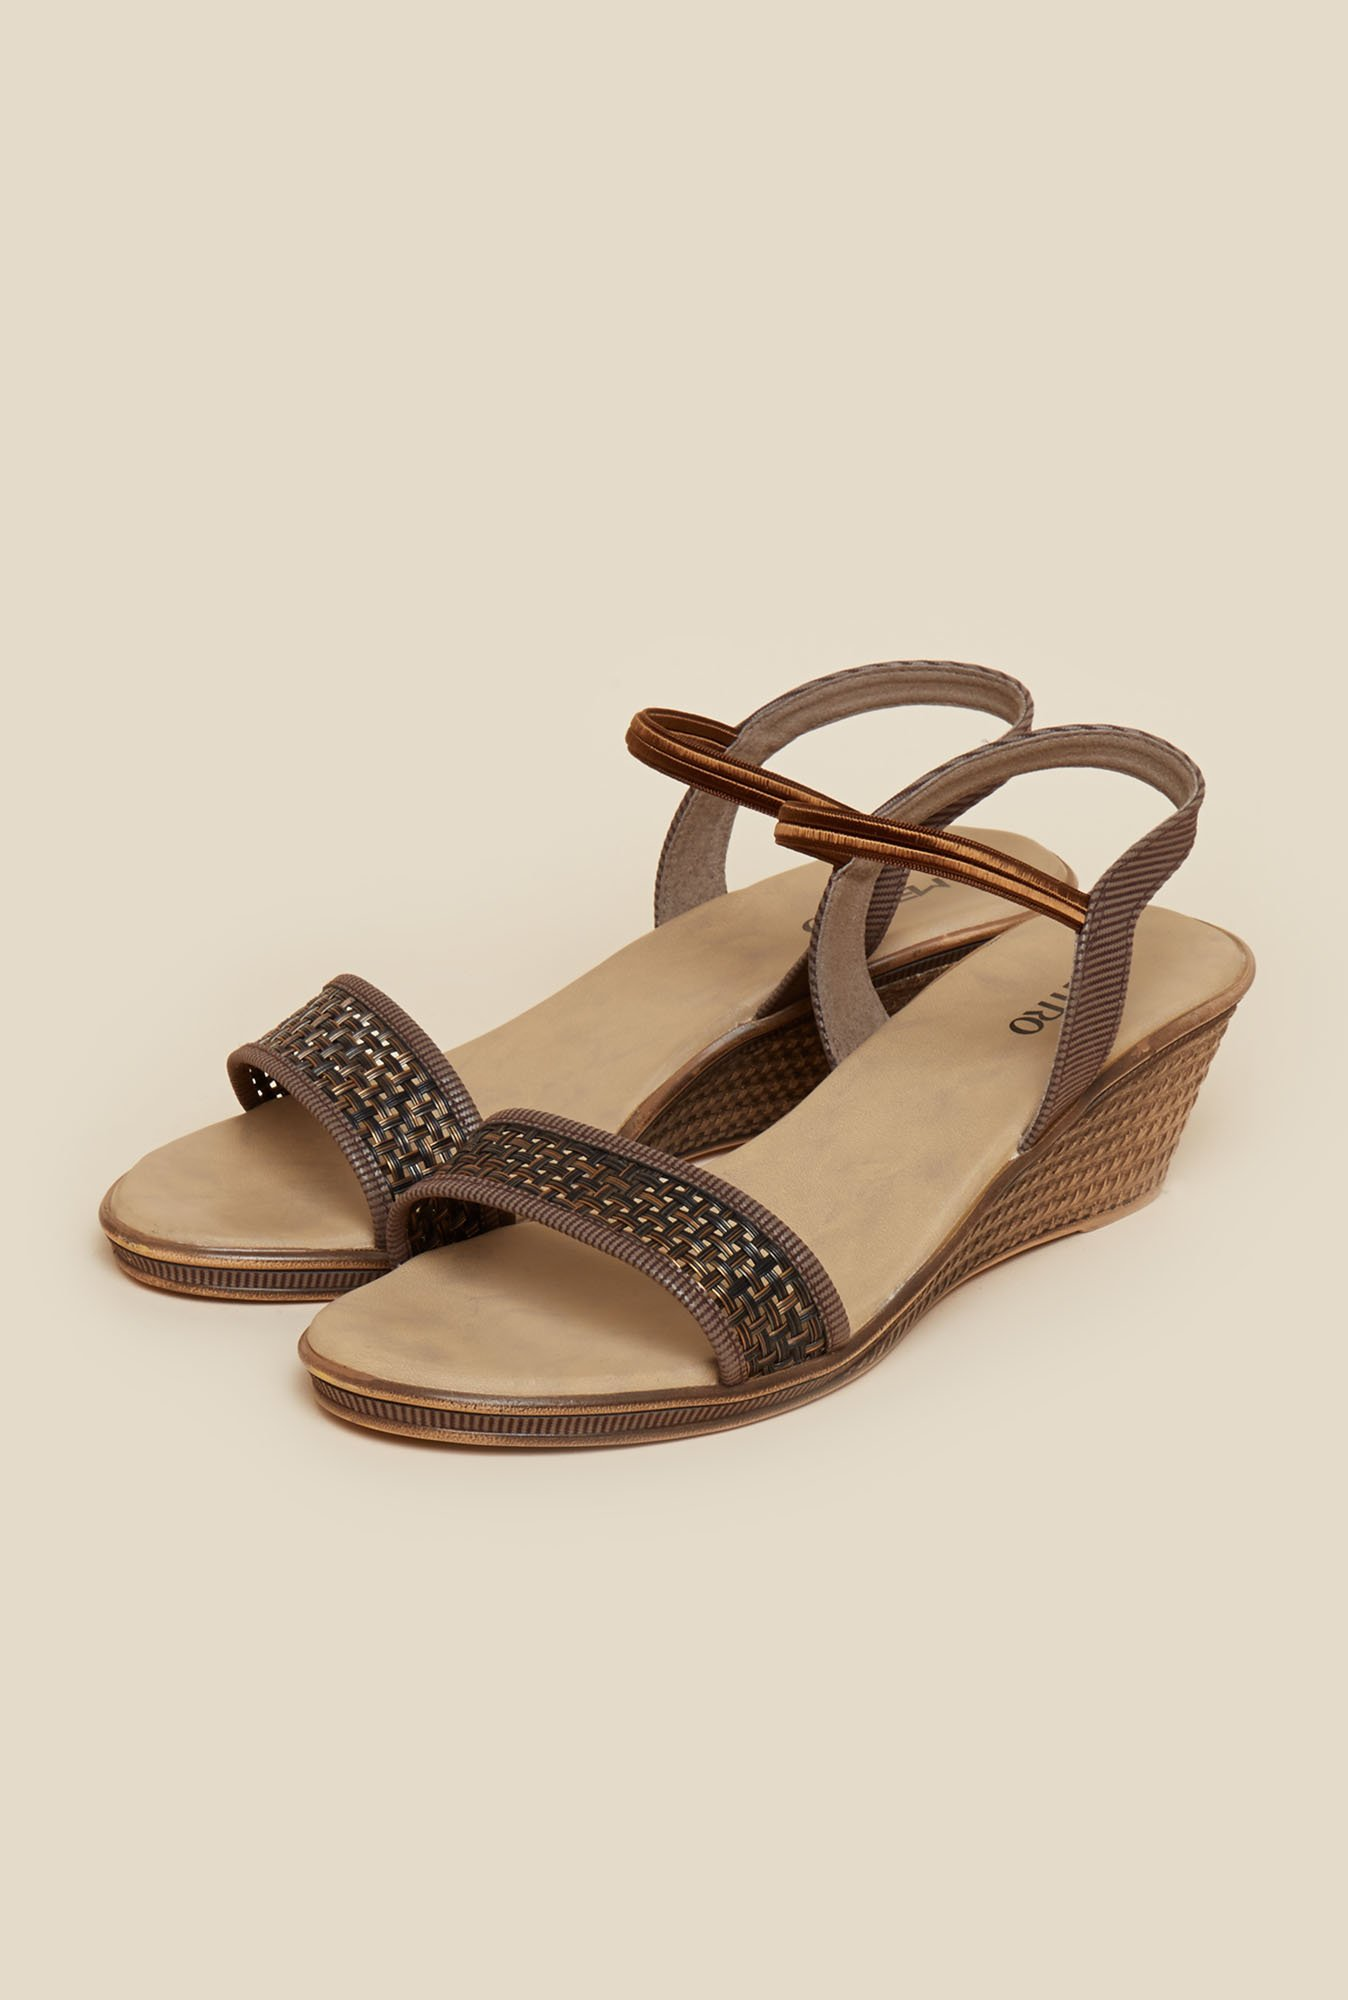 Metro Brown Open Toe Sandals